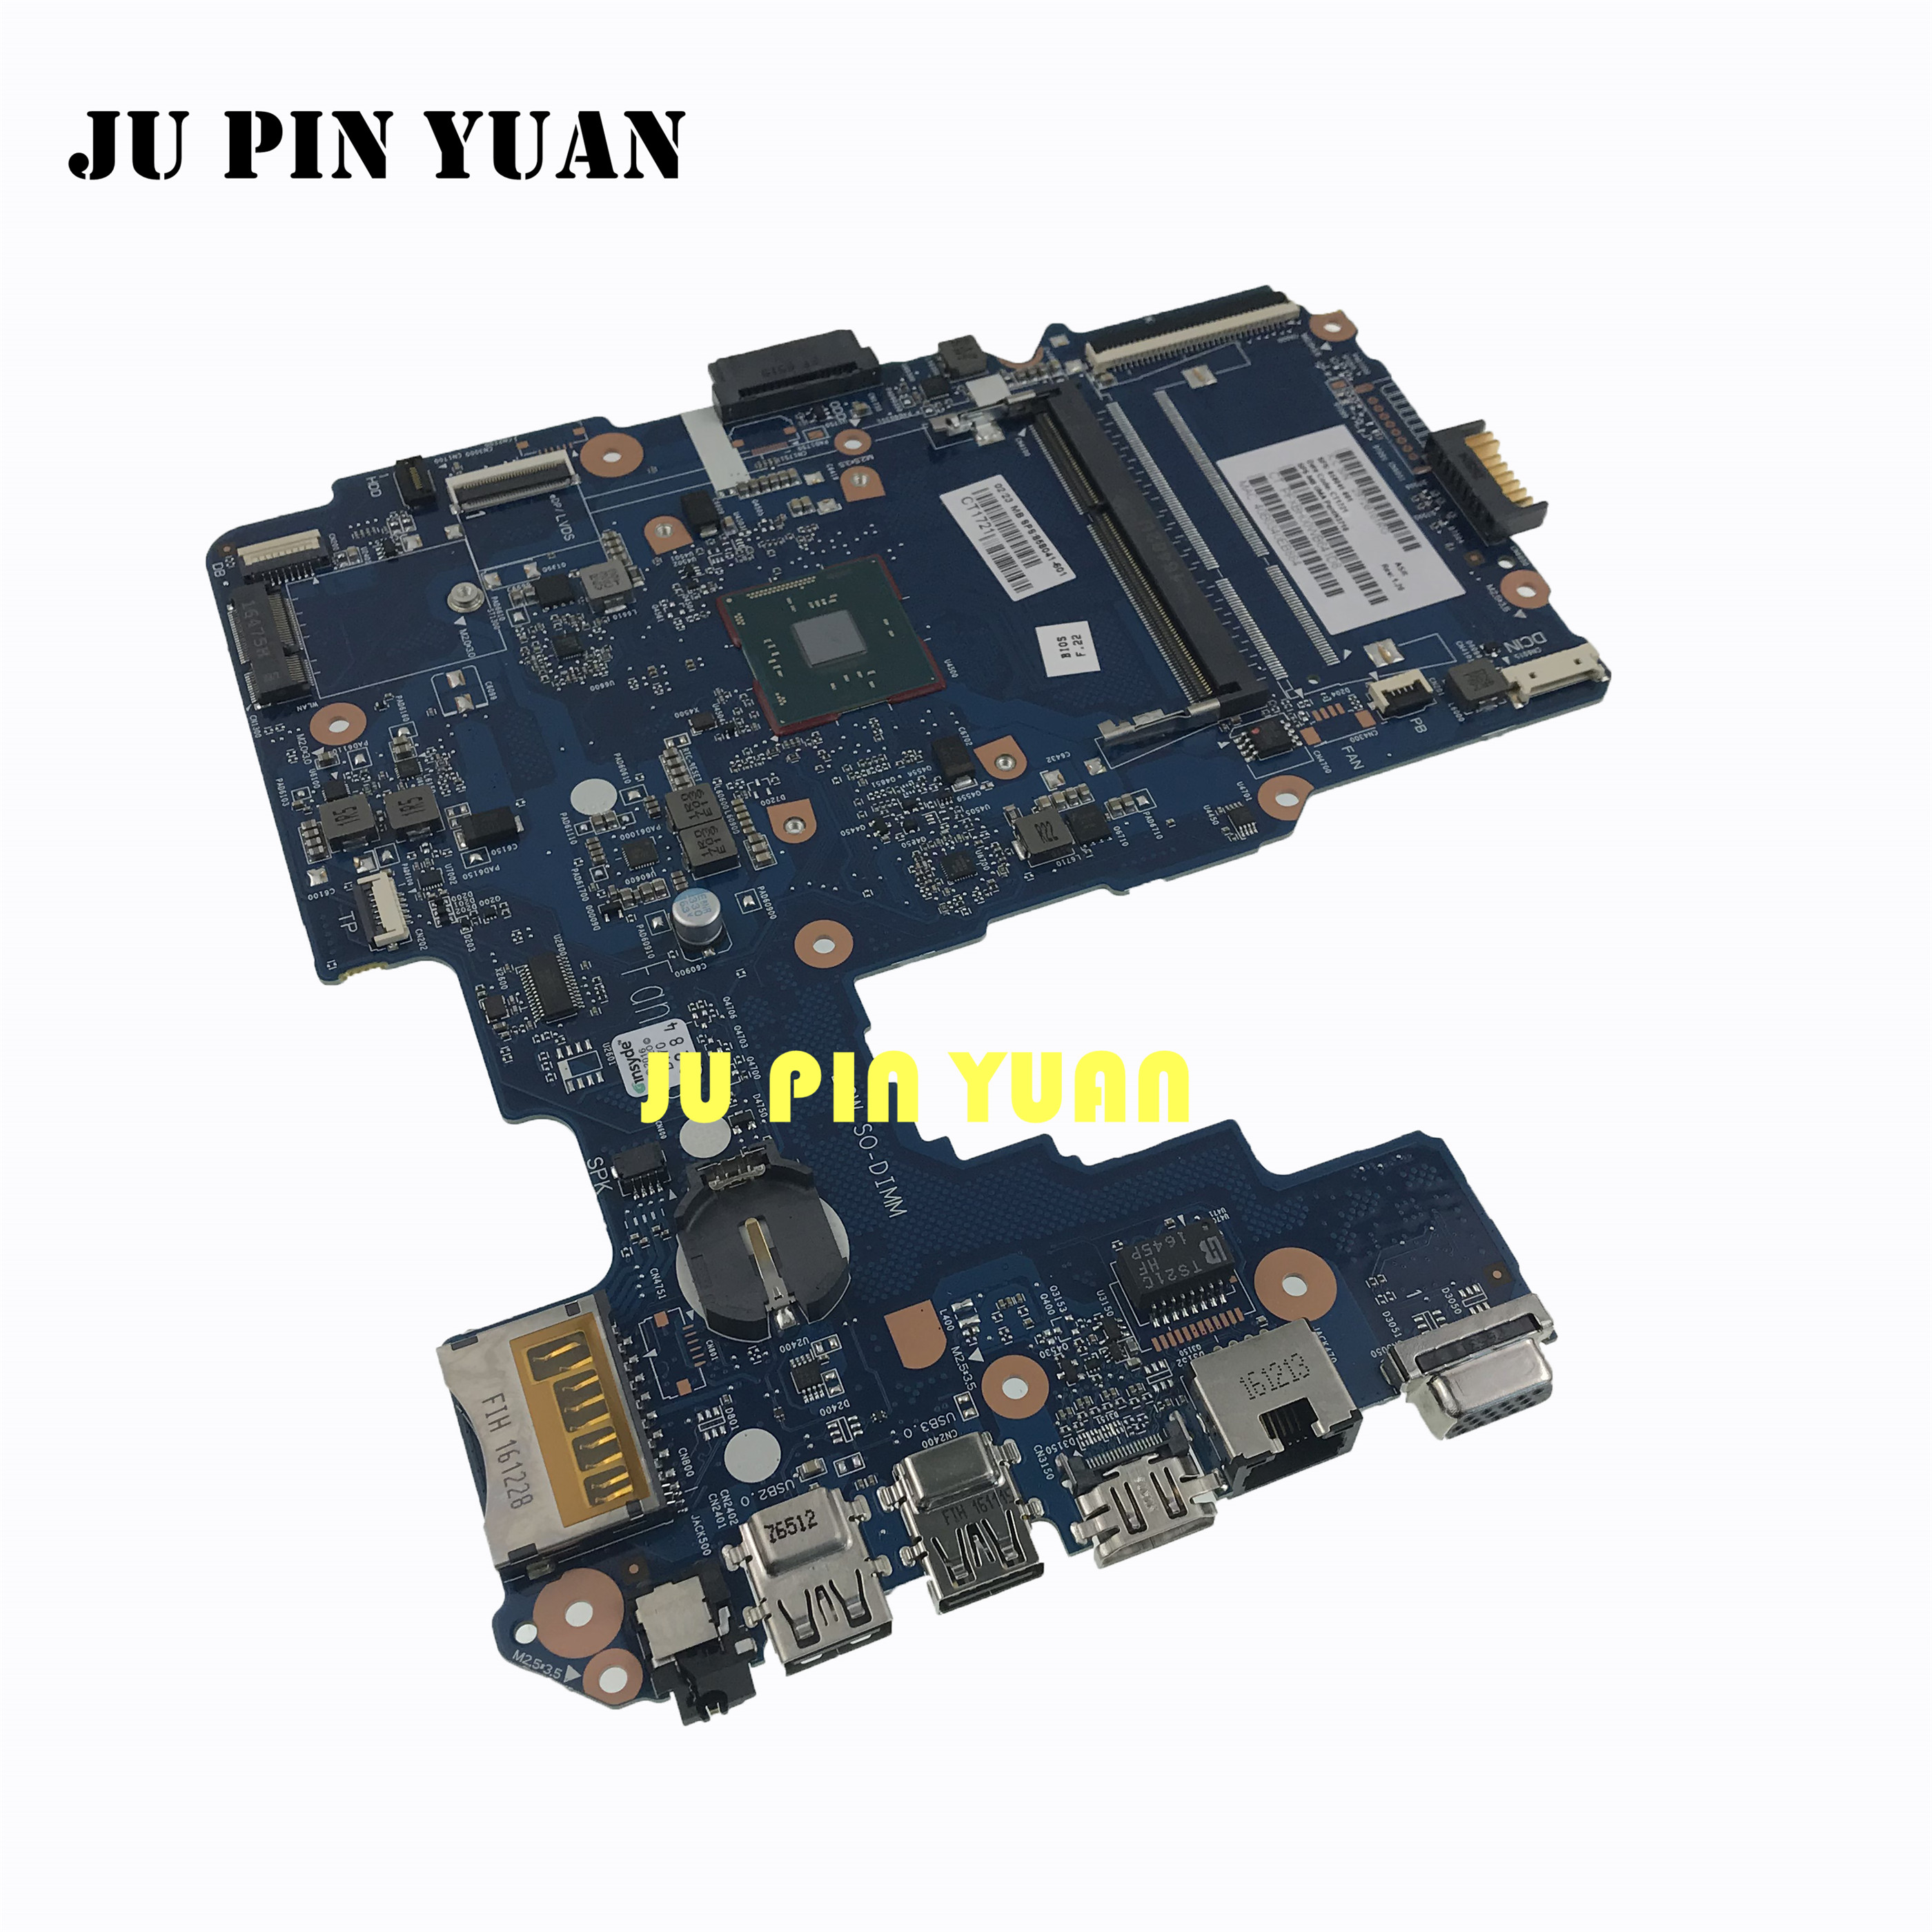 858041-001 858041-601 For <font><b>HP</b></font> Pavilion 240 <font><b>G5</b></font> 14-AM Laptop <font><b>Motherboard</b></font> DINERINL-6050A2823301-MB-A01 with N3710U all fully Tested image